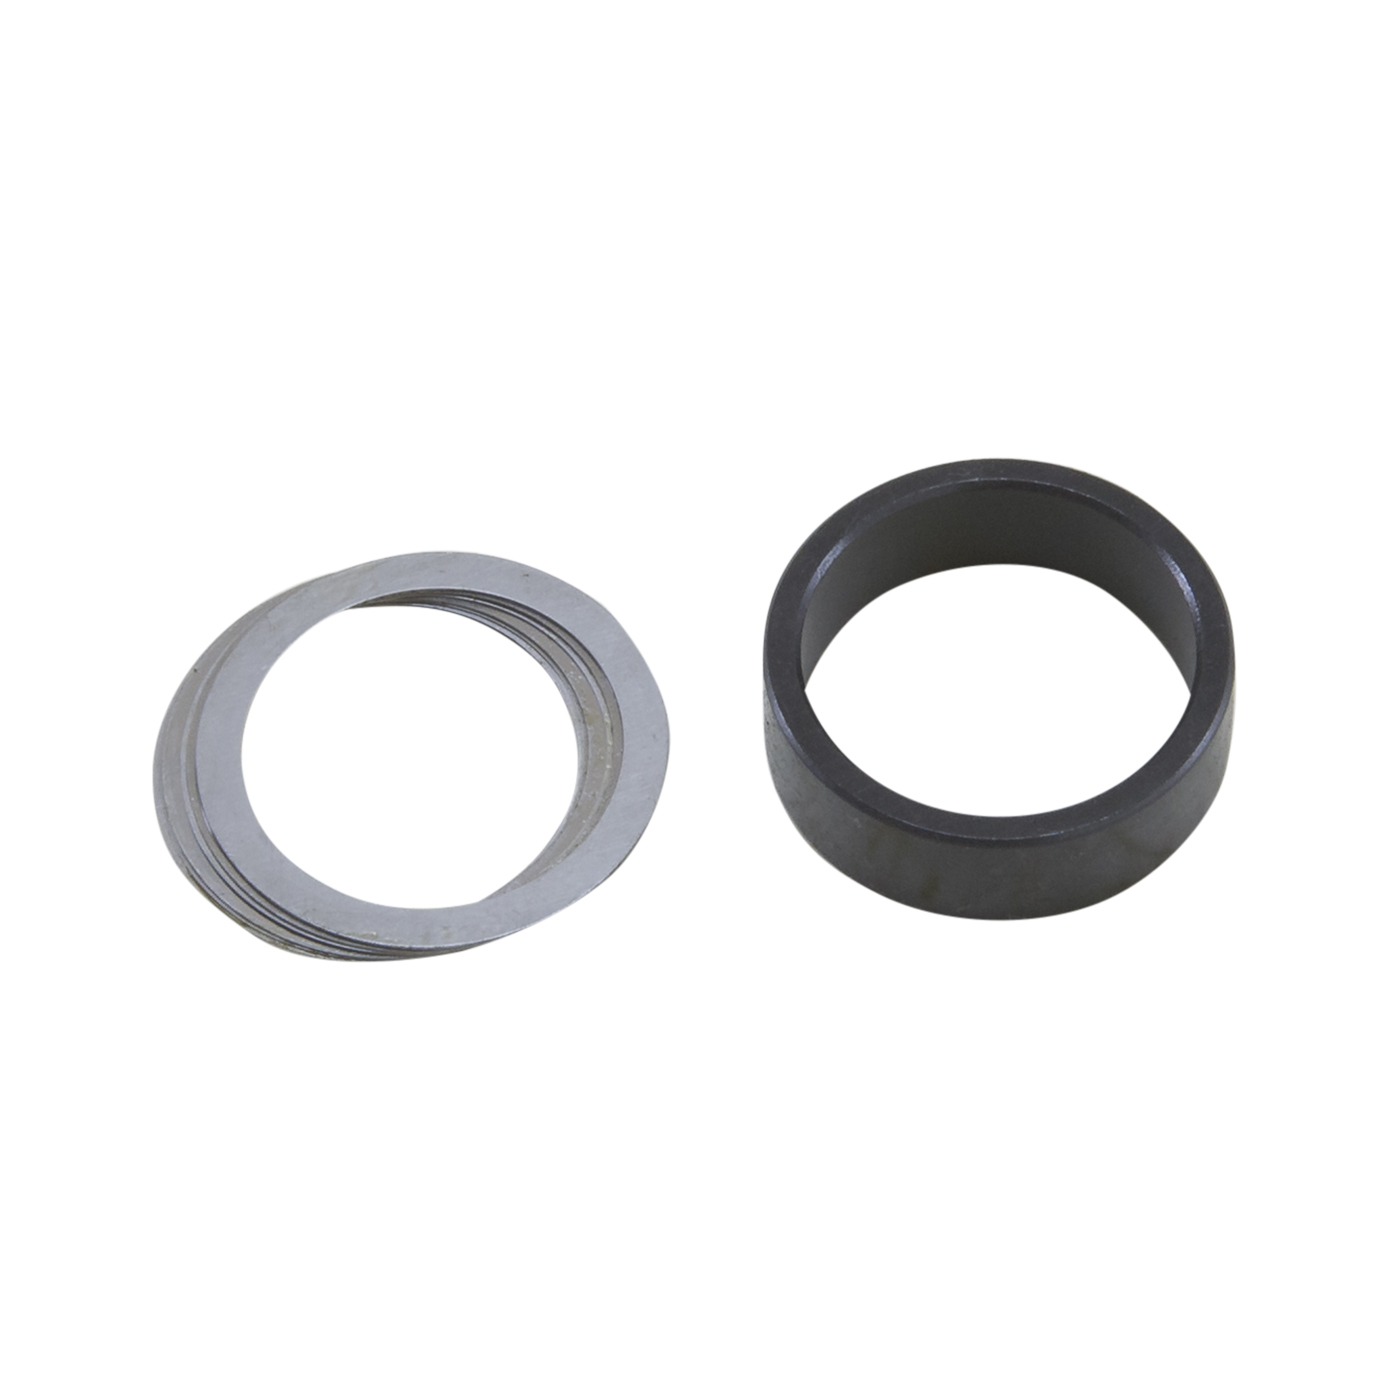 SK DS110 - Replacement preload shim kit for Dana Spicer S110, S111, S130 & S132.